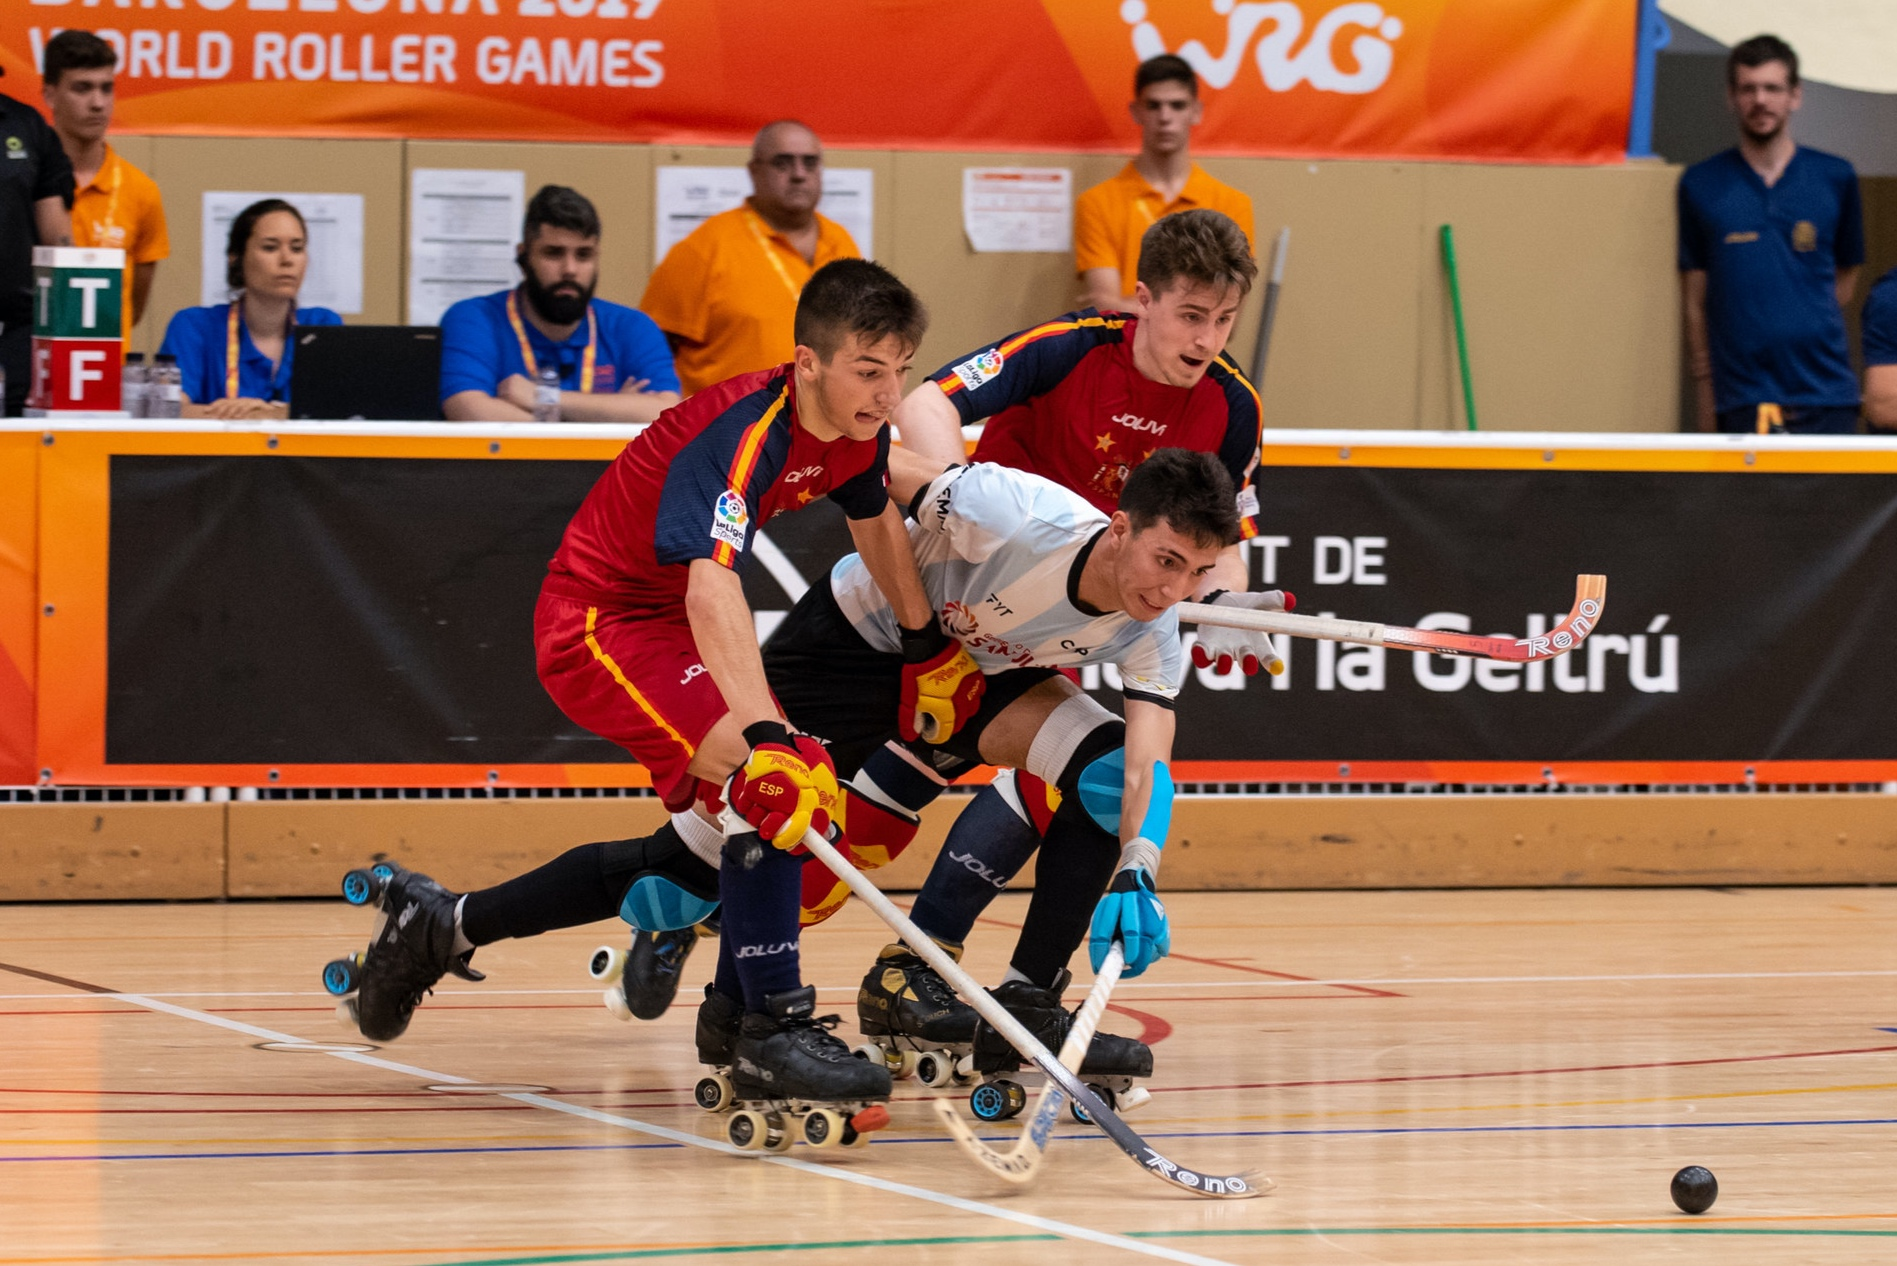 argentina-españa-world-roller-games-barcelona-2019-hockey-sobre-patines.jpg